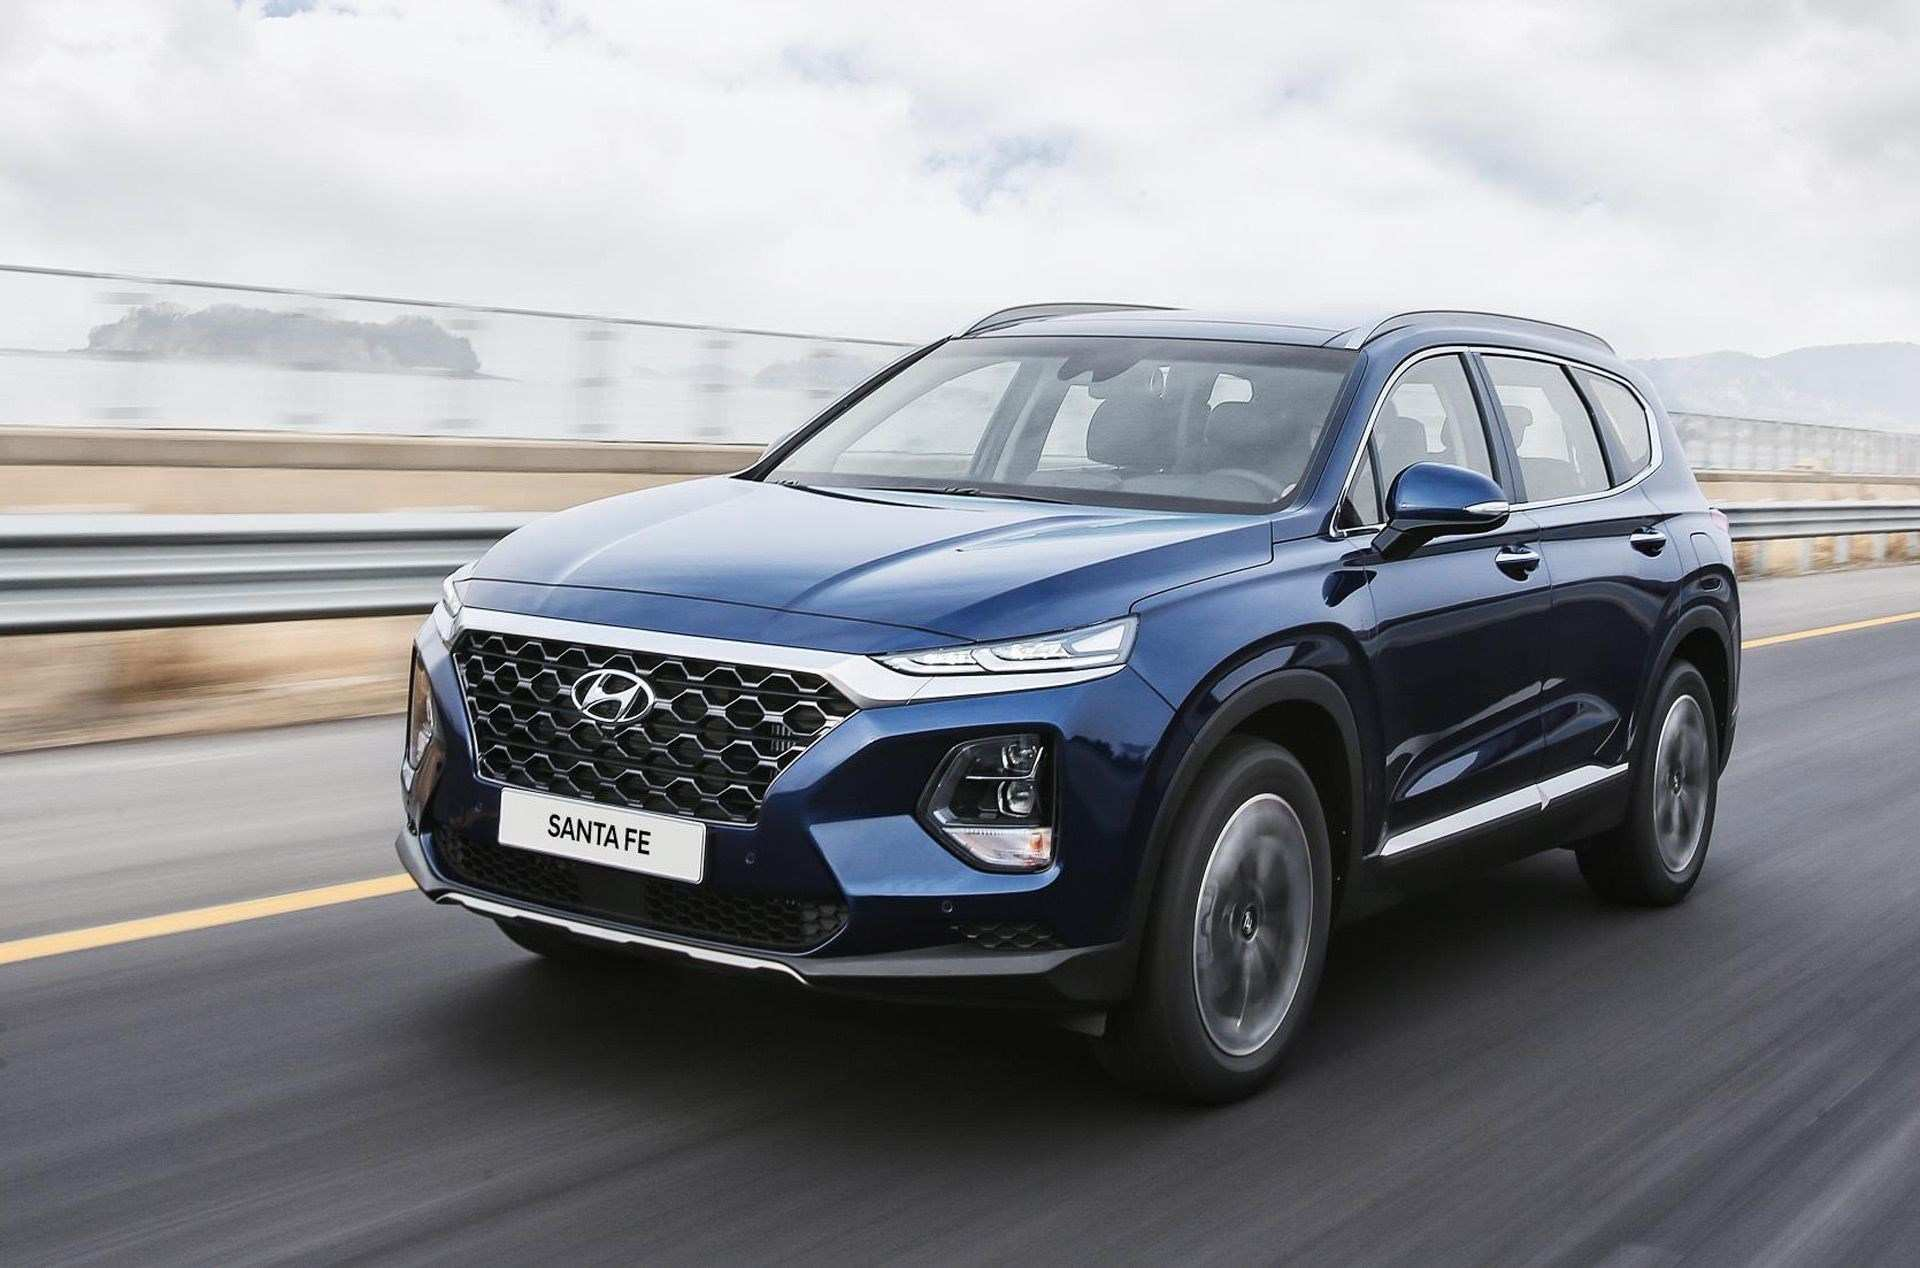 89 The Best Hyundai Kona 2020 Redesign And Concept